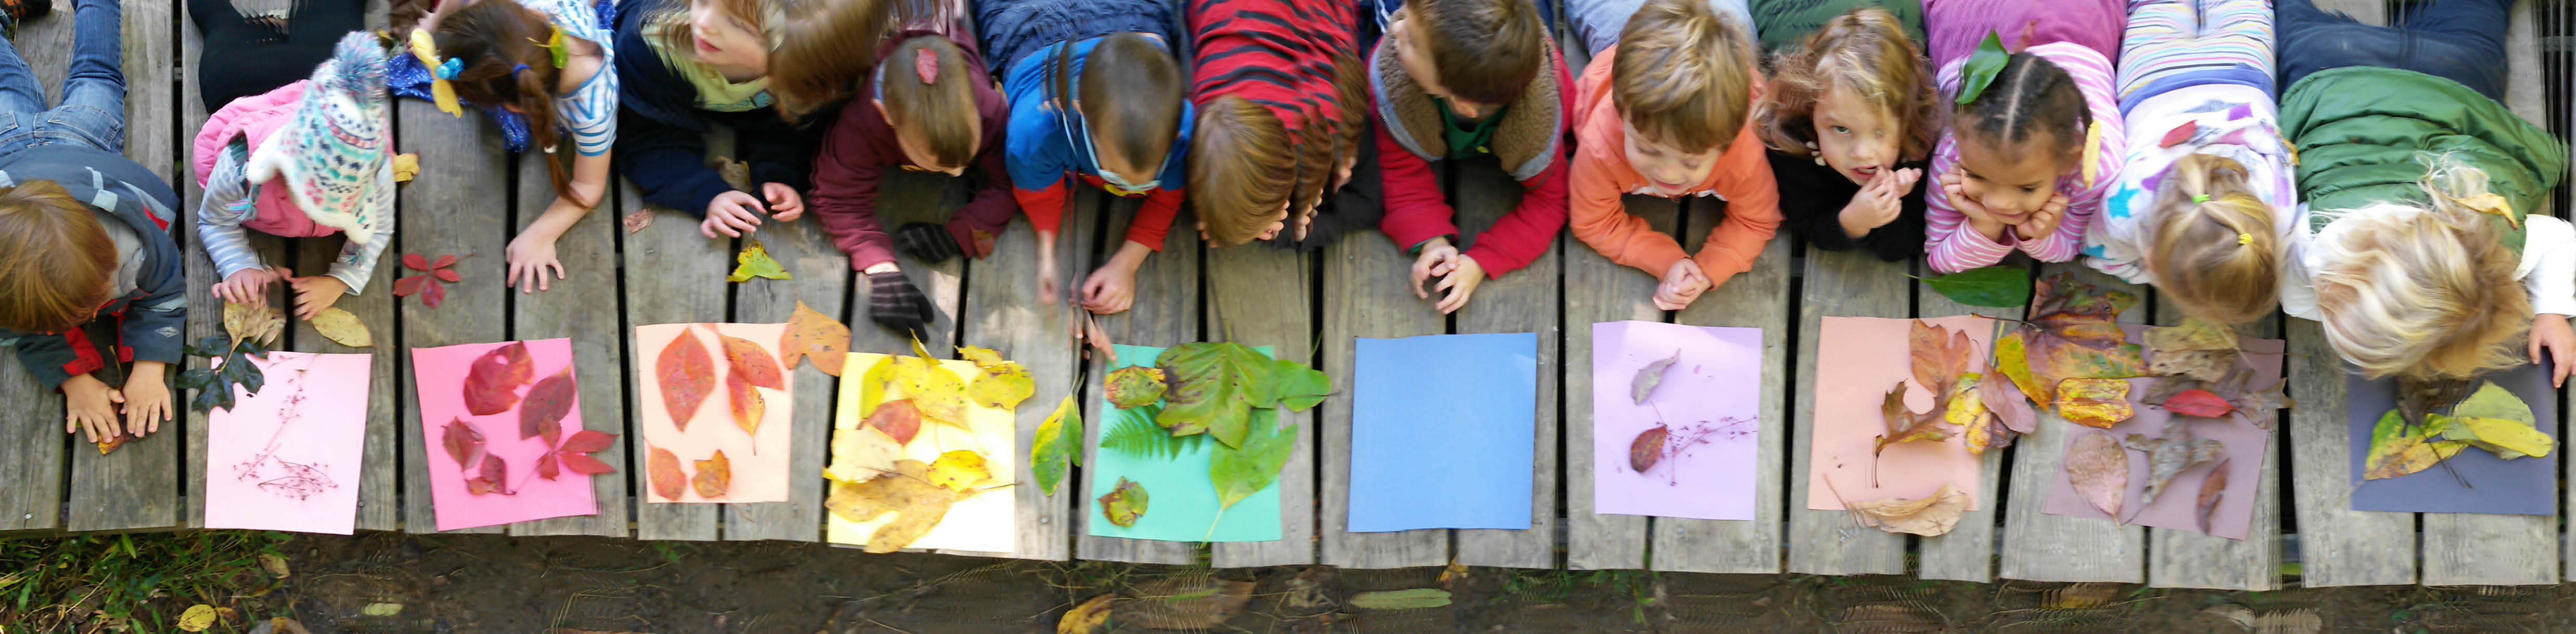 Children Need Nature Getting Ready For Kindergarten